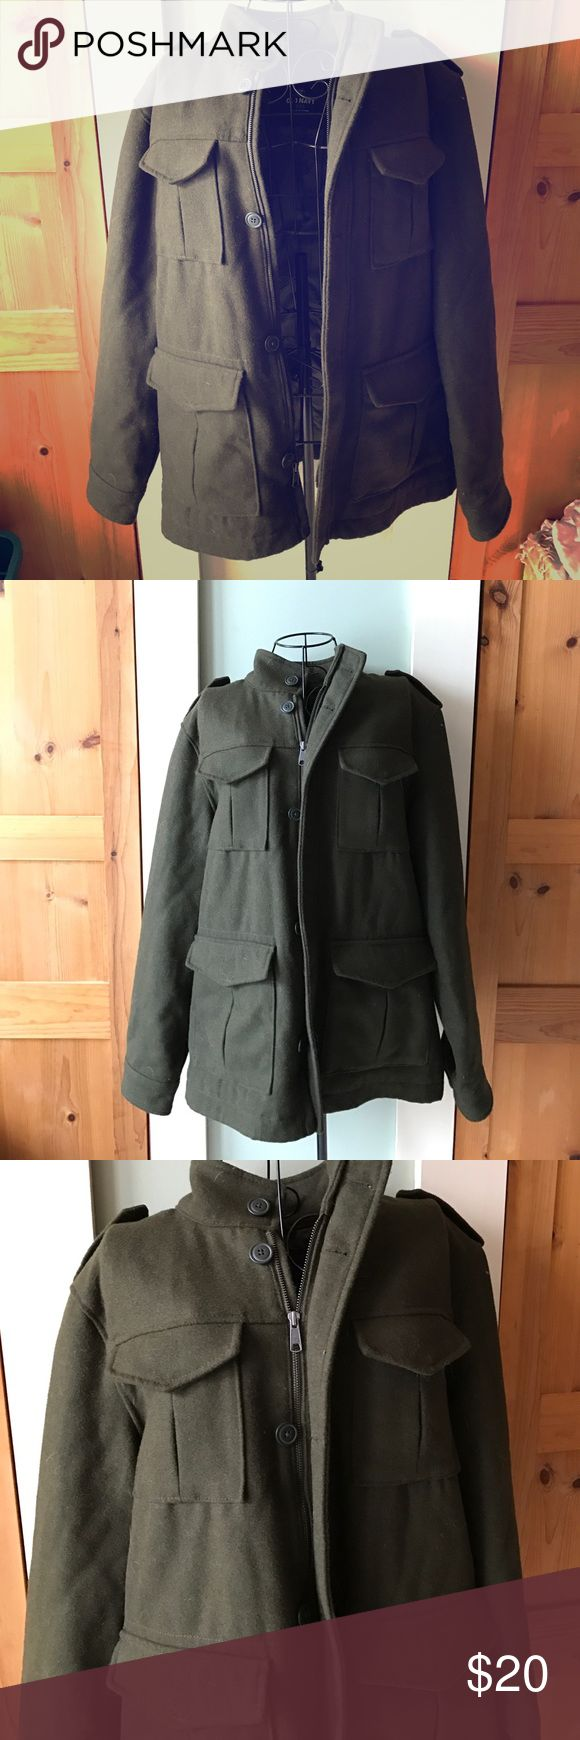 Men's Old Navy coat Wool men's coat by old navy. In EUC size large green wool coat. No rips, stains, or pilling. Always dry cleaned. Please ask any questions I didn't answer. Old Navy Jackets & Coats Military & Field